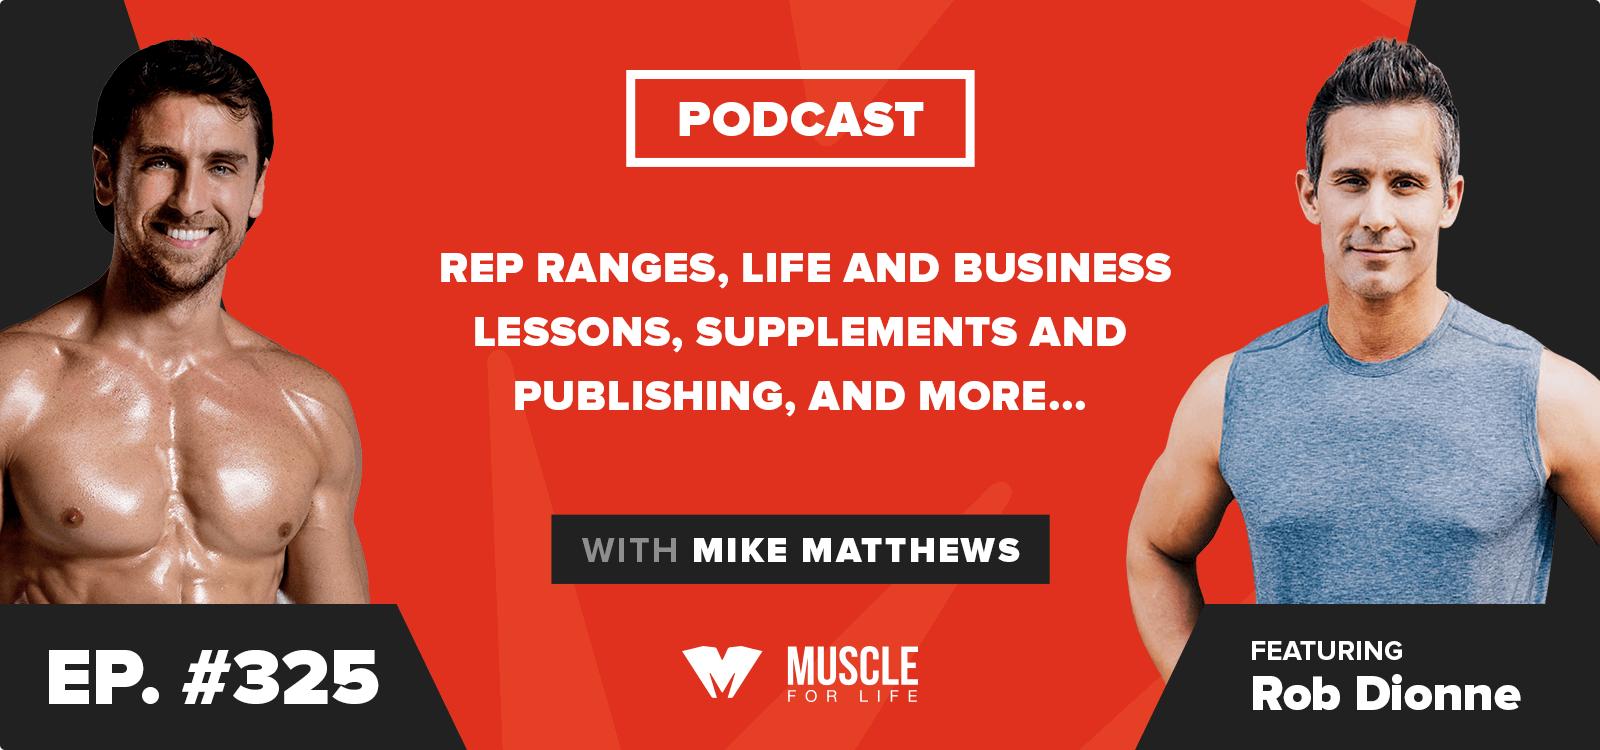 Rep Ranges, Life and Business Lessons, Supplements and Publishing, and More…